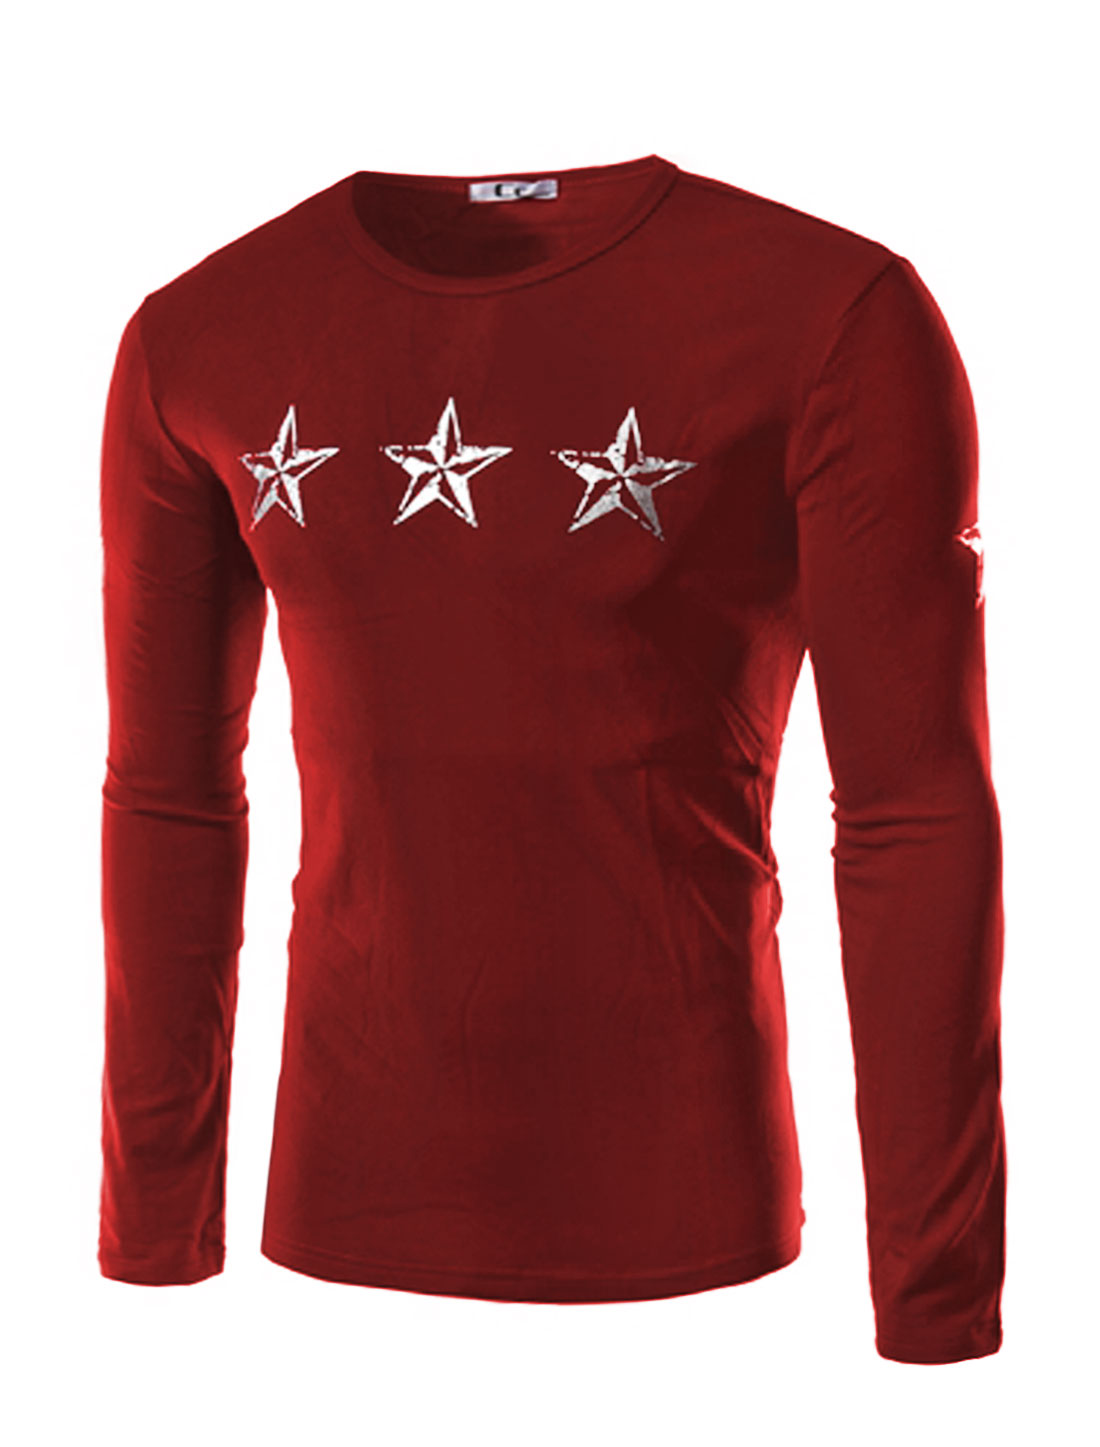 Men Crew Neck Stars Letters Slim Fit Tee Shirt Red M